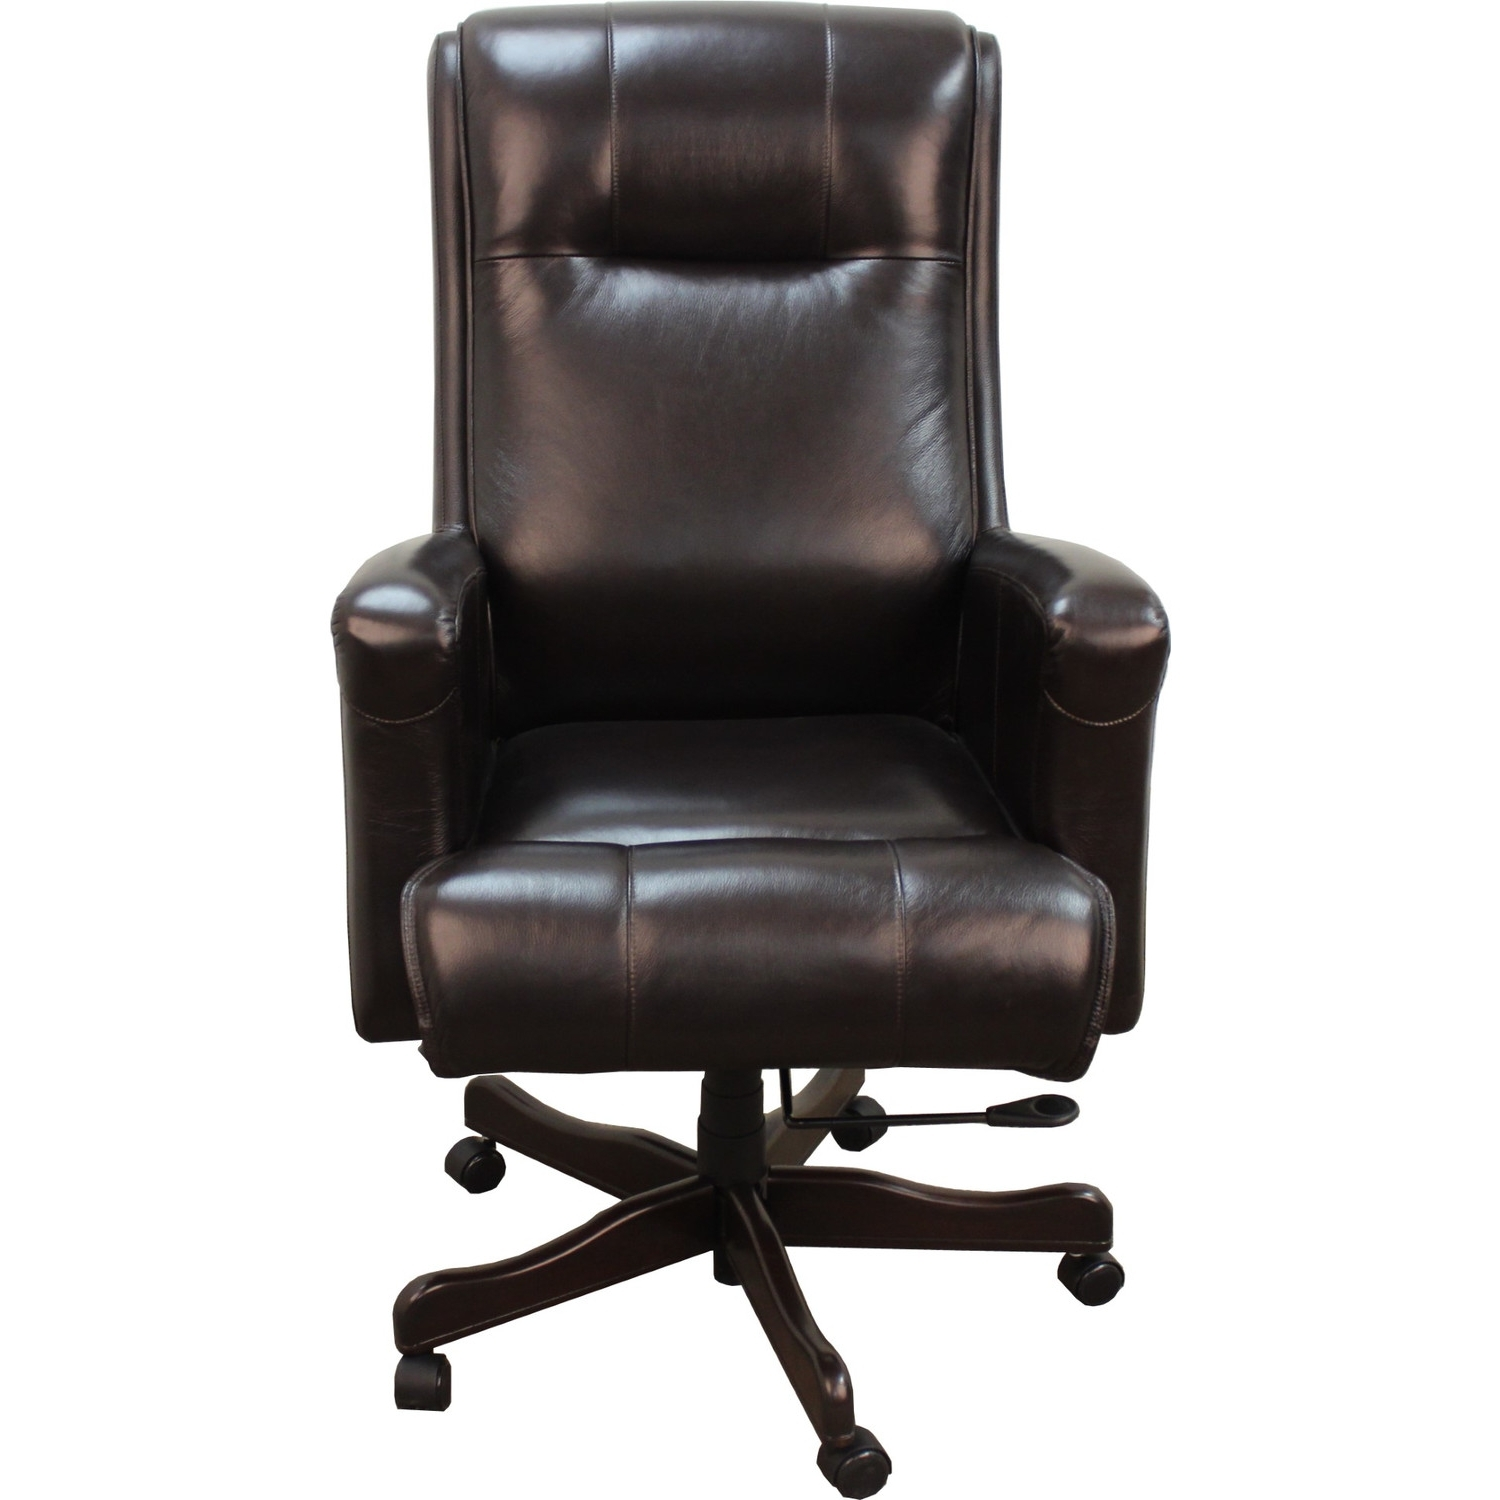 Popular Chair : La Z Boy Executive Leather Office Chair Voyager 92d33 Intended For Black Executive Office Chairs With High Back (View 6 of 20)